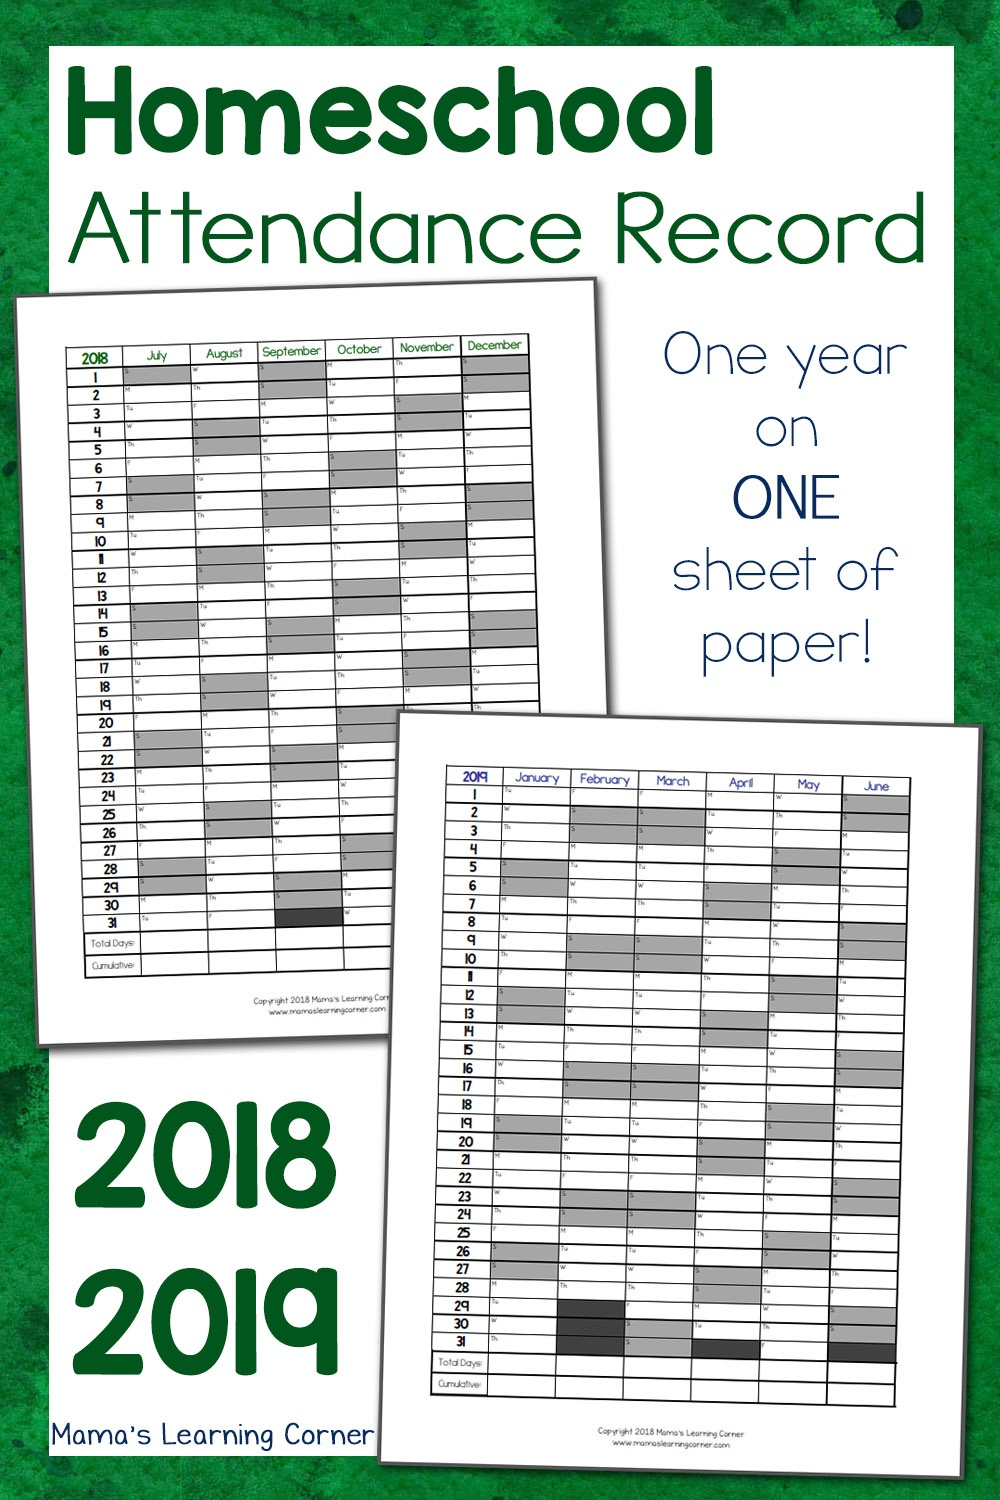 Simple Homeschool Attendance Record 2018-2019 - Mamas Learning Corner - Free Printable Attendance Sheets For Homeschool